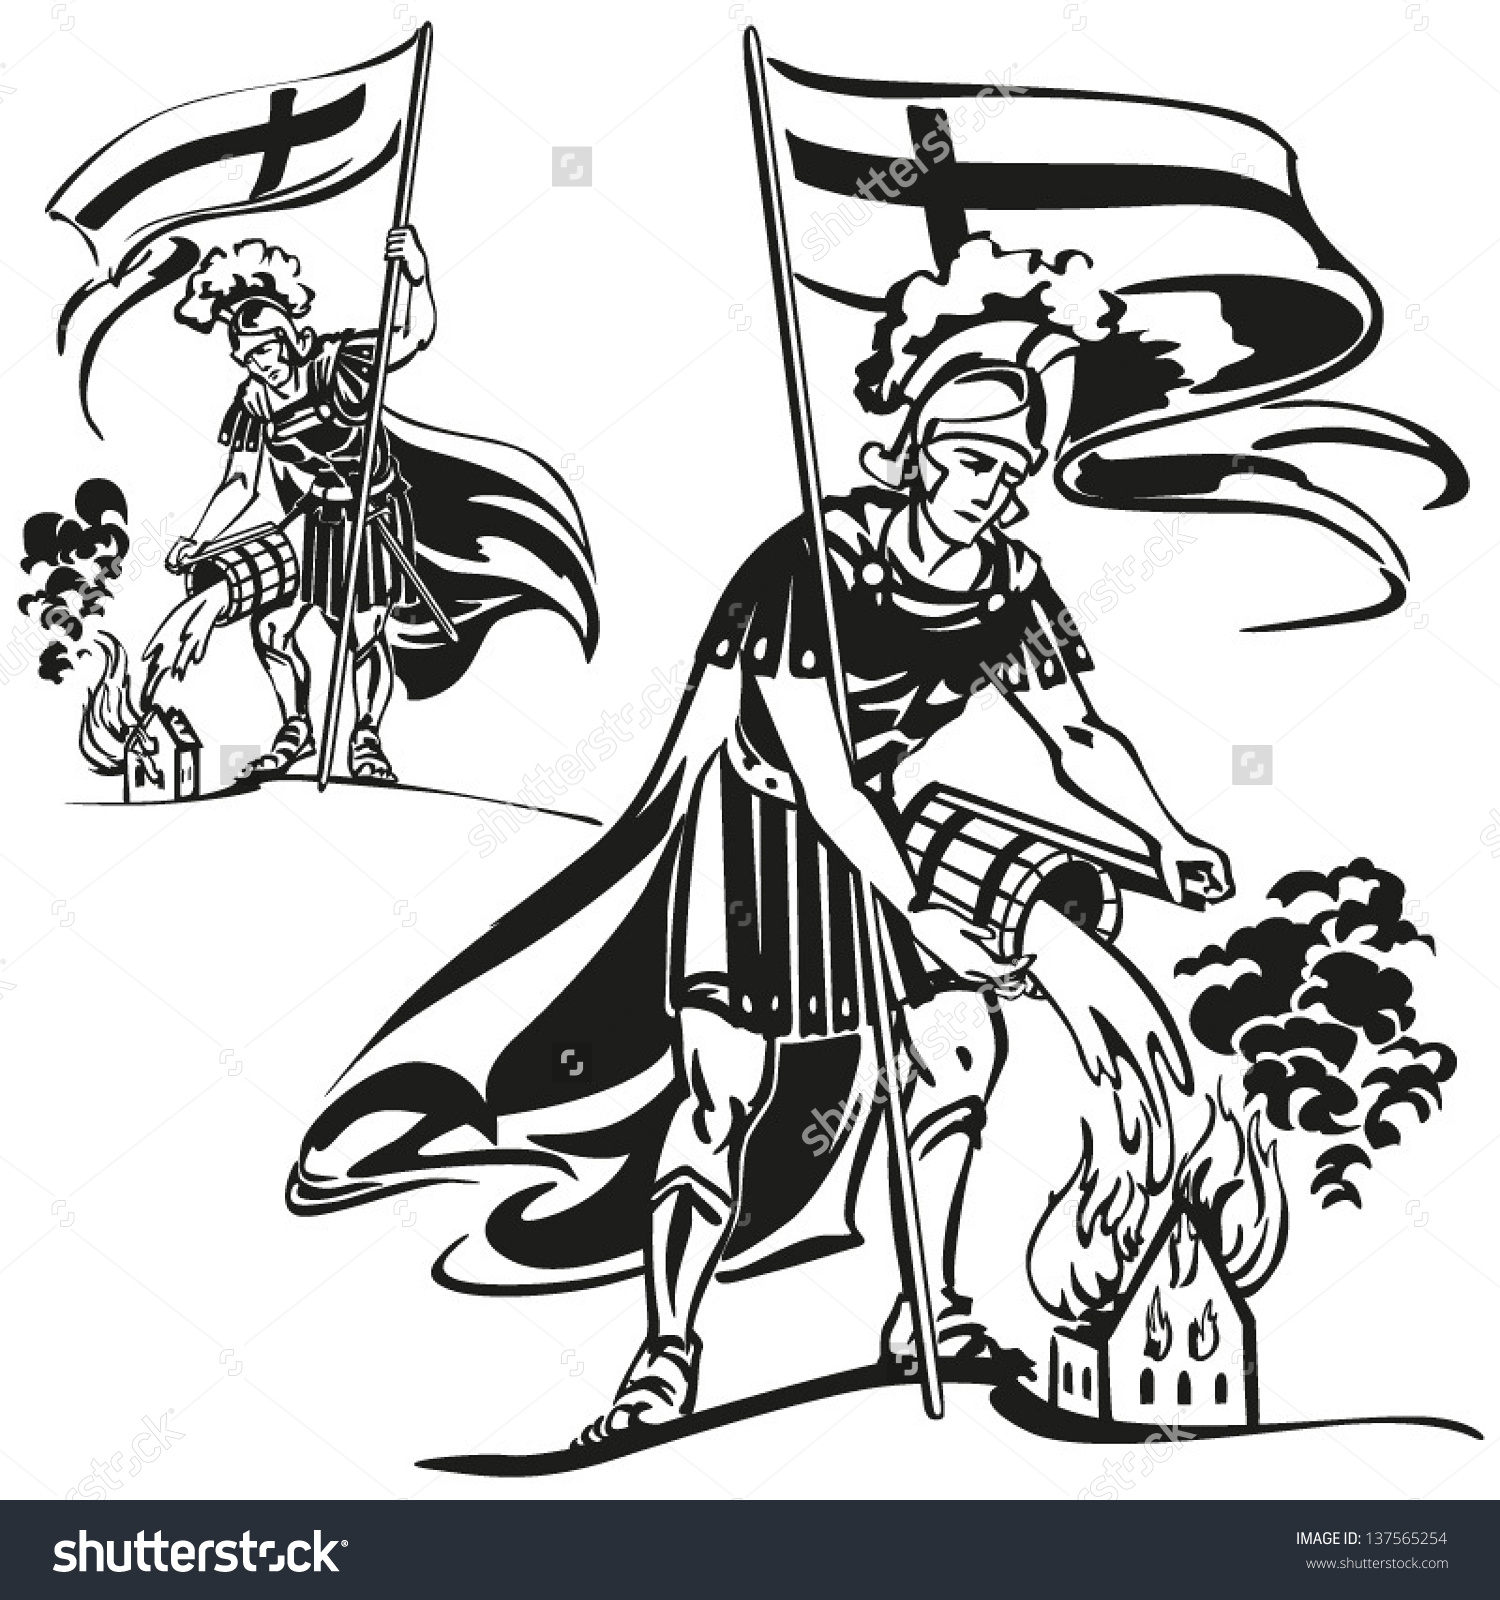 St Florian Themes Brush Drawingbased Vector Stock Vector 137565254.